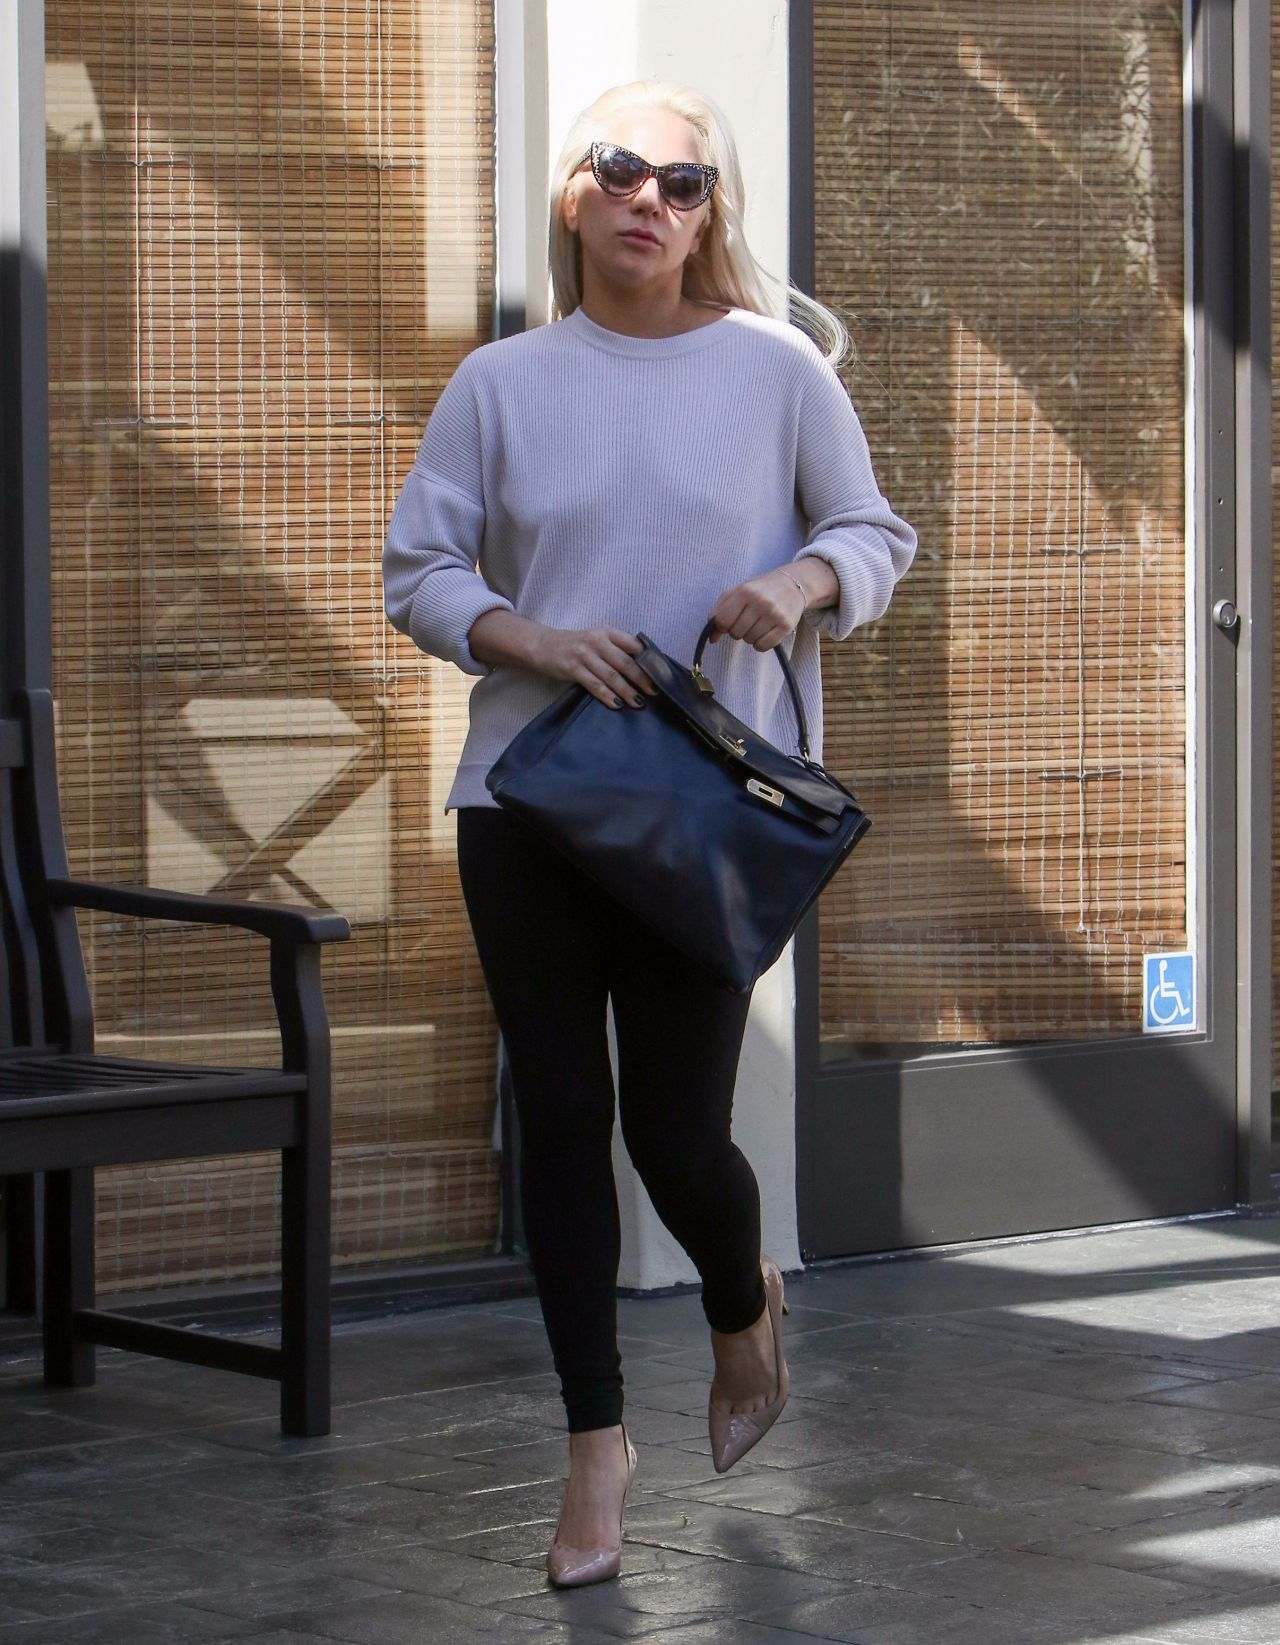 Lady gaga night time out fashion beverly hills new picture